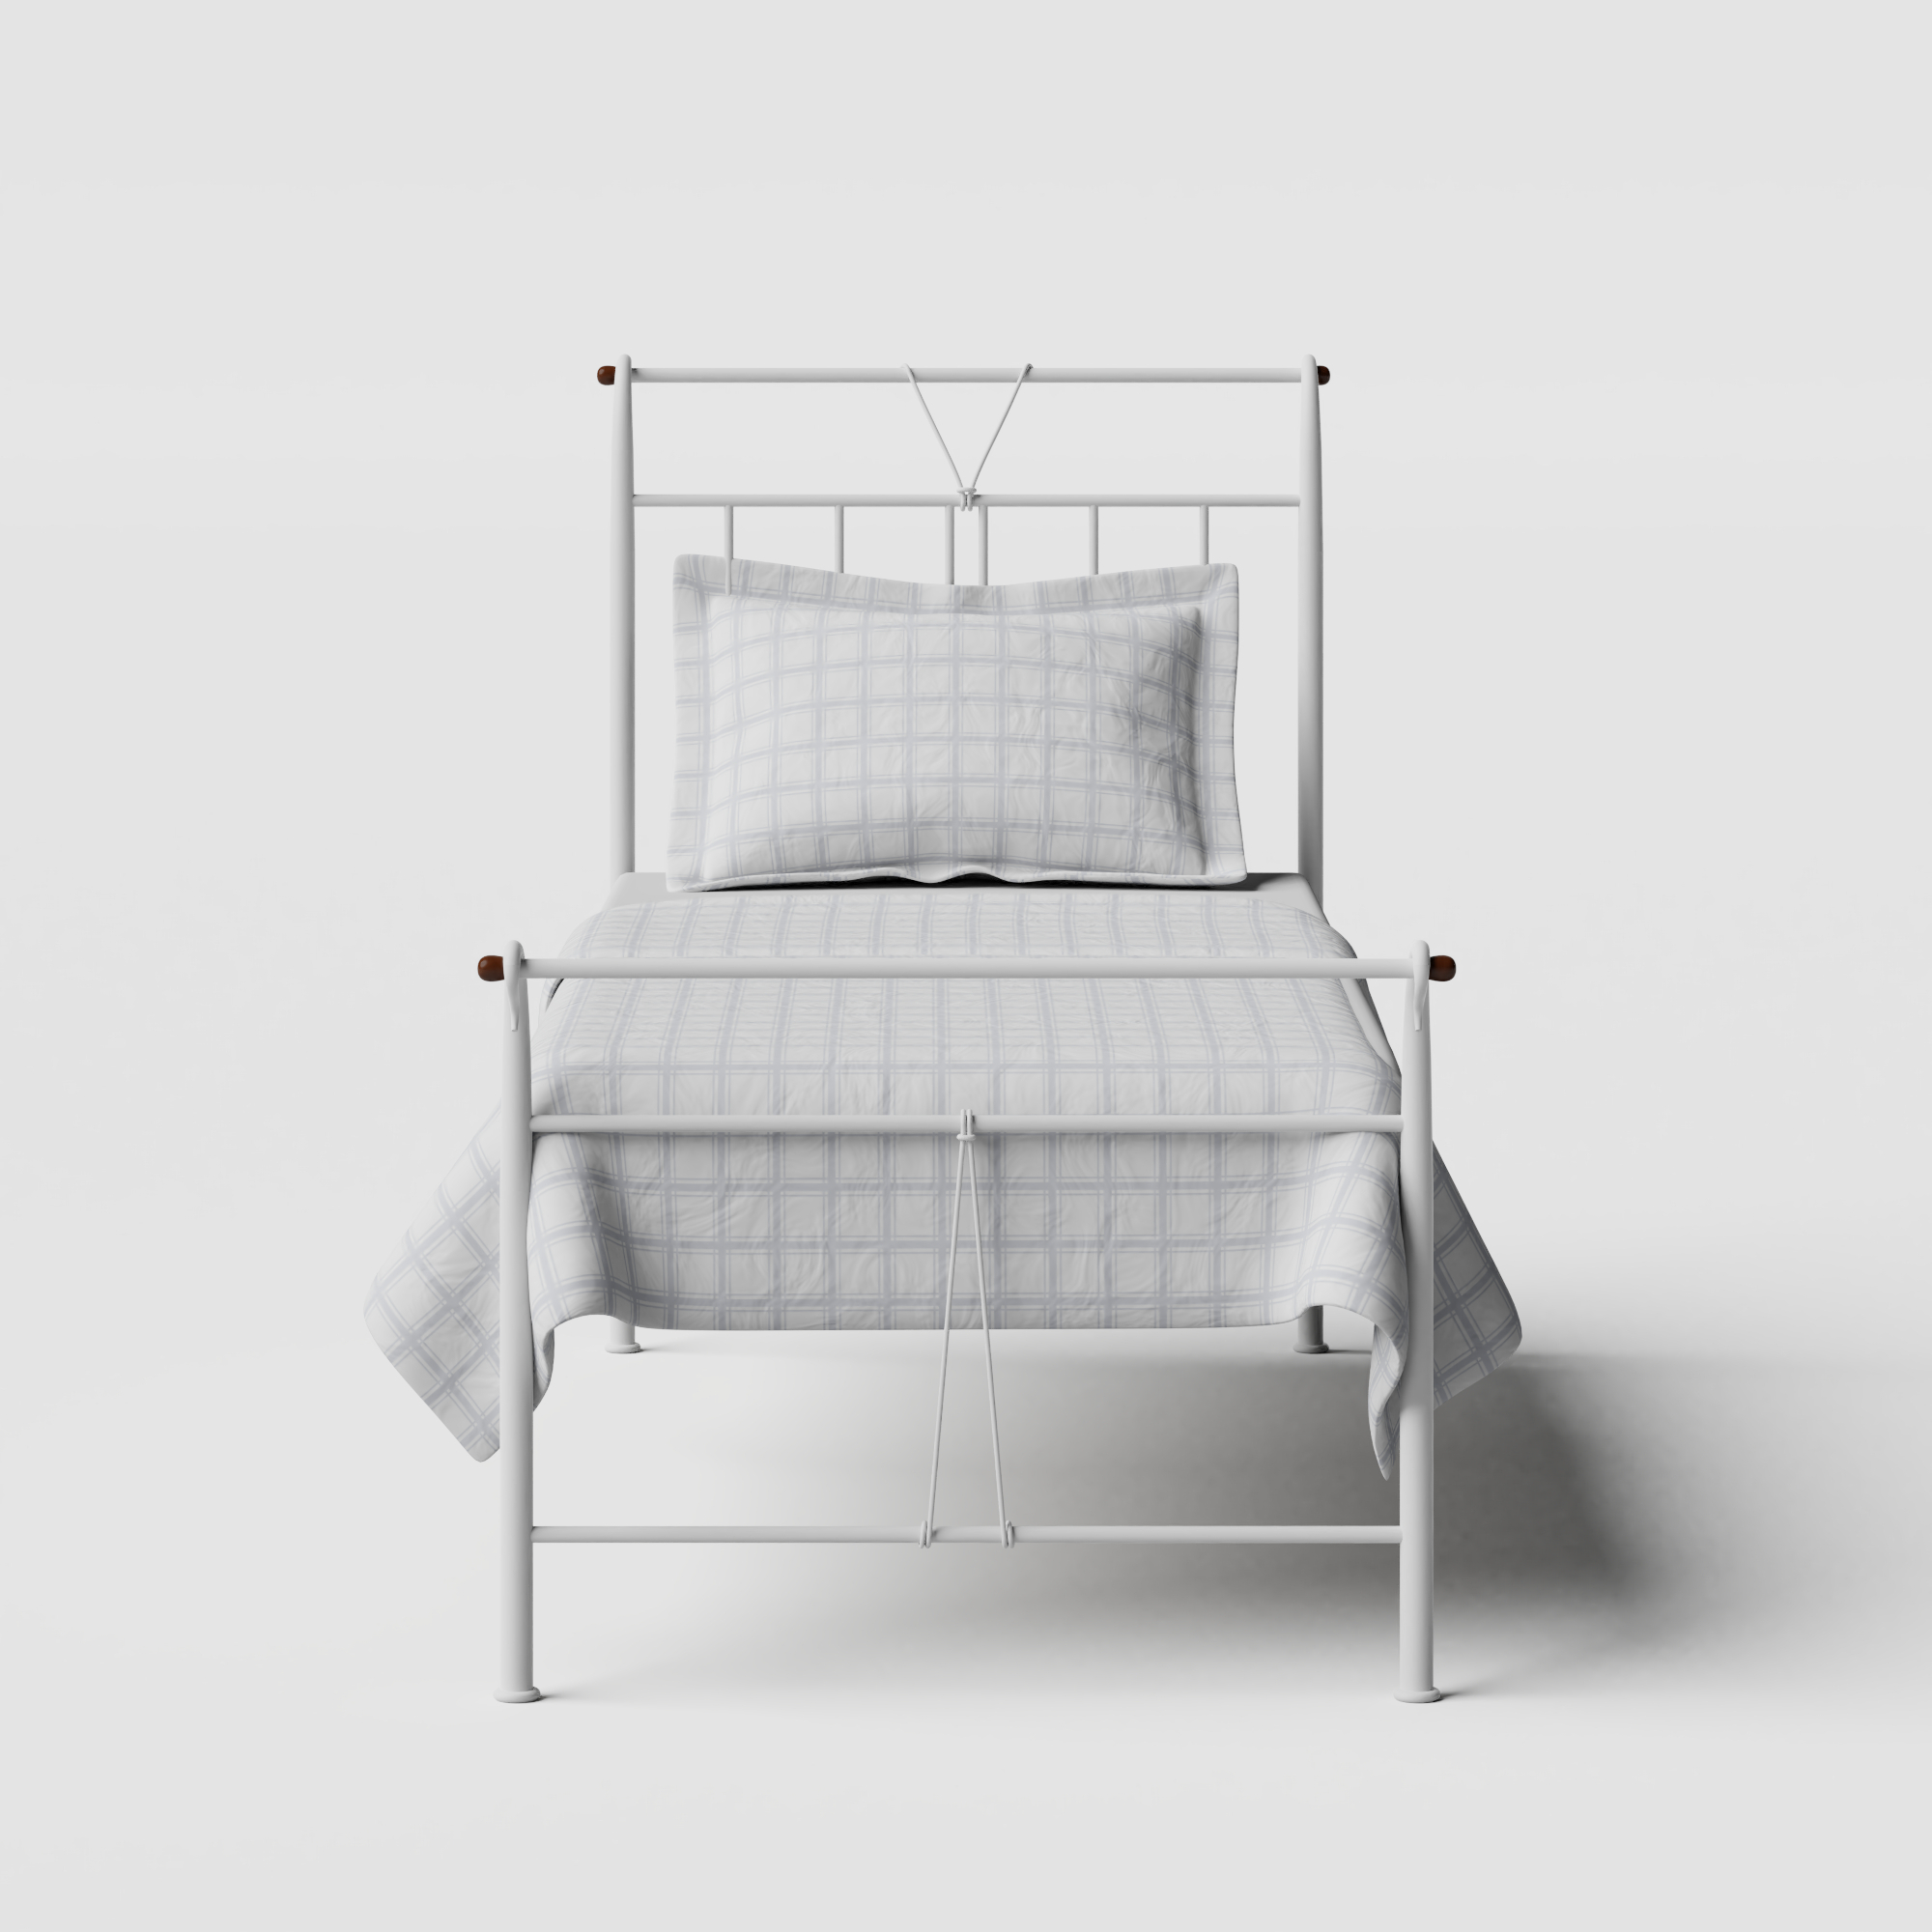 Pellini iron/metal single bed in white